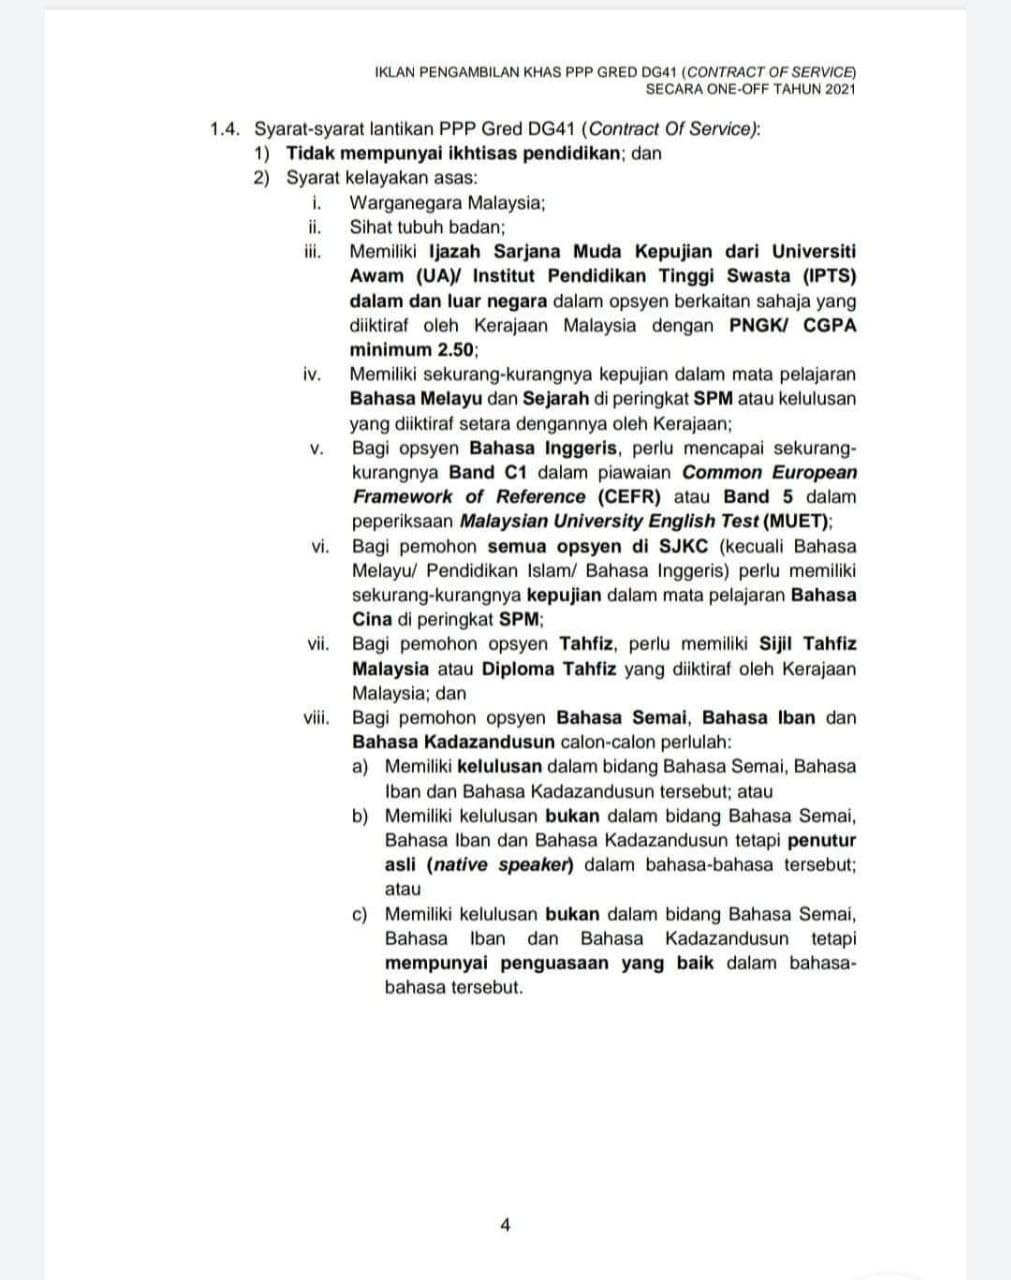 PPP Gred DG41  (Contract of Service)